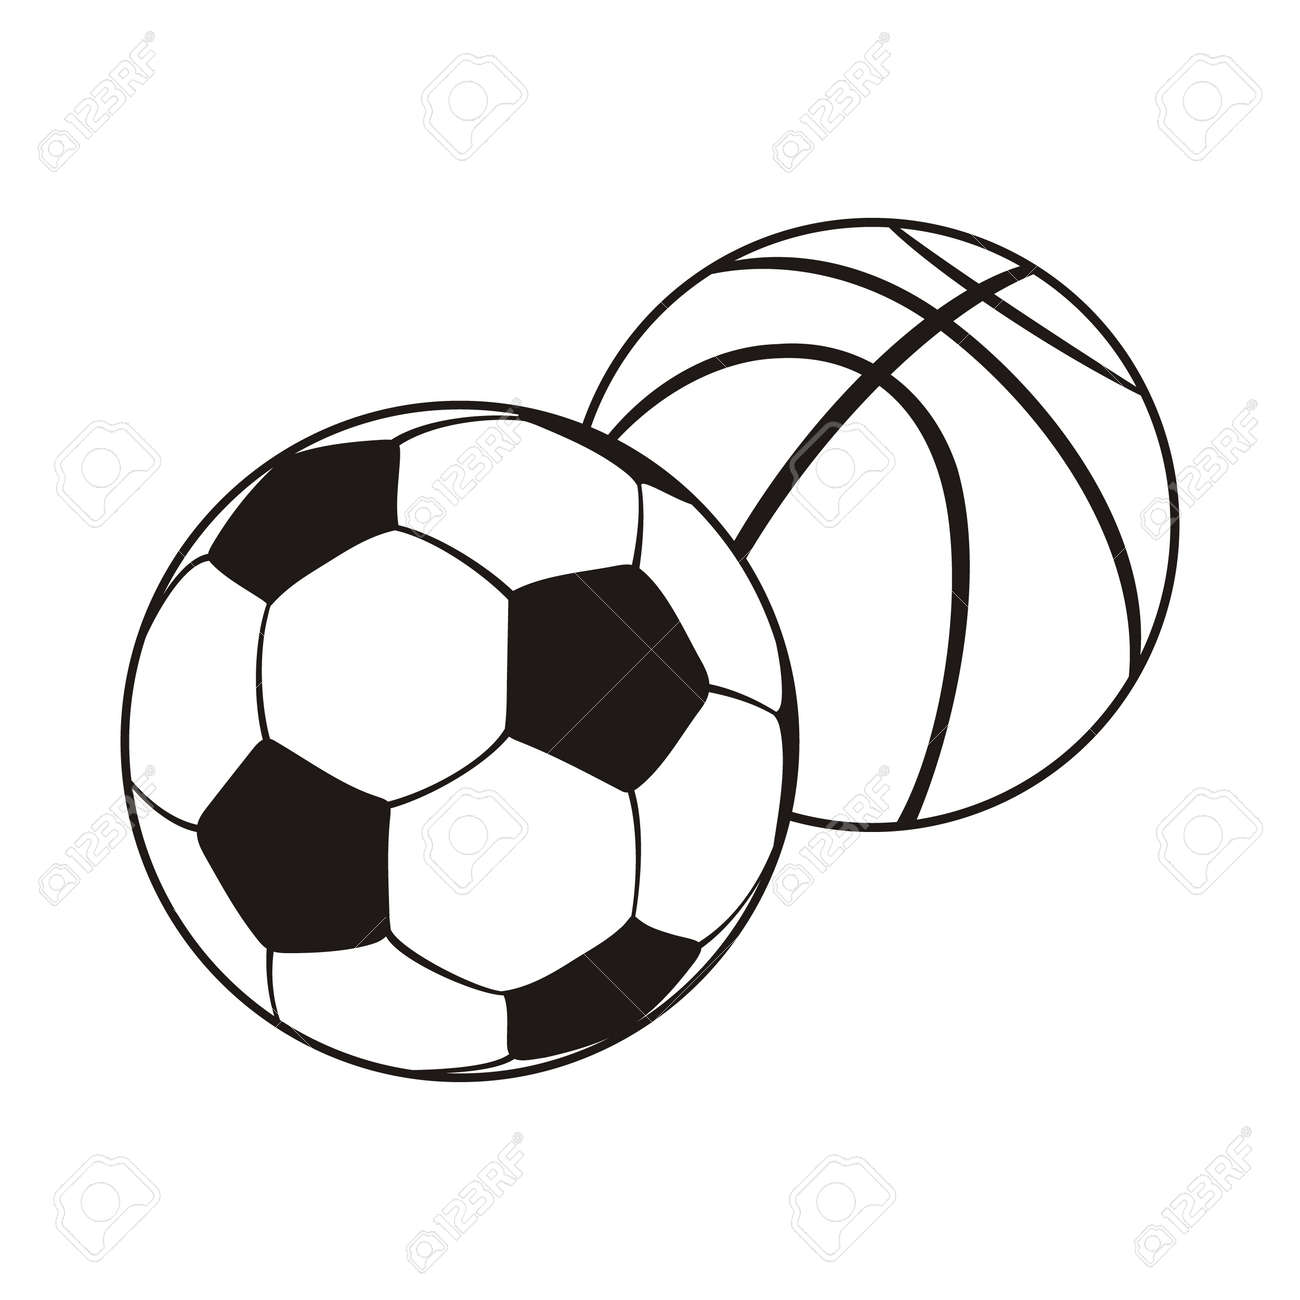 Awesome Monochrome Set Ball For Football And Basketball. Black White Sports Balls  For Playing Football And